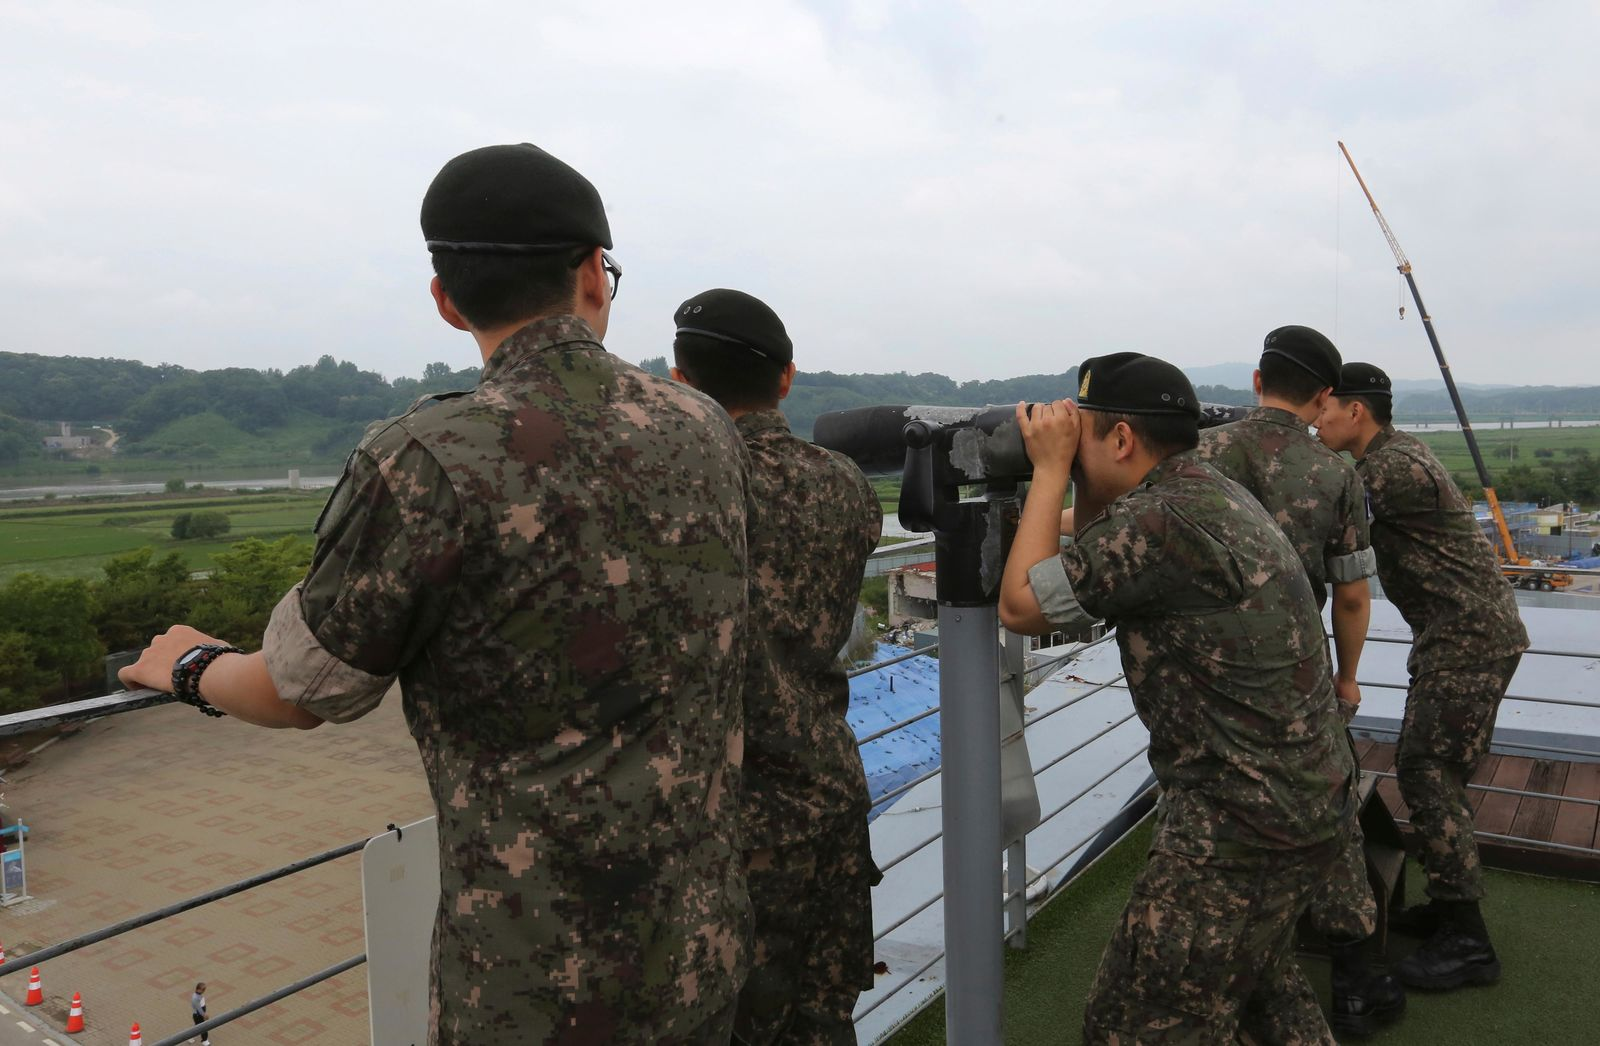 South Korean army soldiers look toward the North's side at the Imjingak Pavilion, near the demilitarized zone of Panmunjom, in Paju, South Korea, Thursday, June 20, 2019.{ } (AP Photo/Ahn Young-joon)